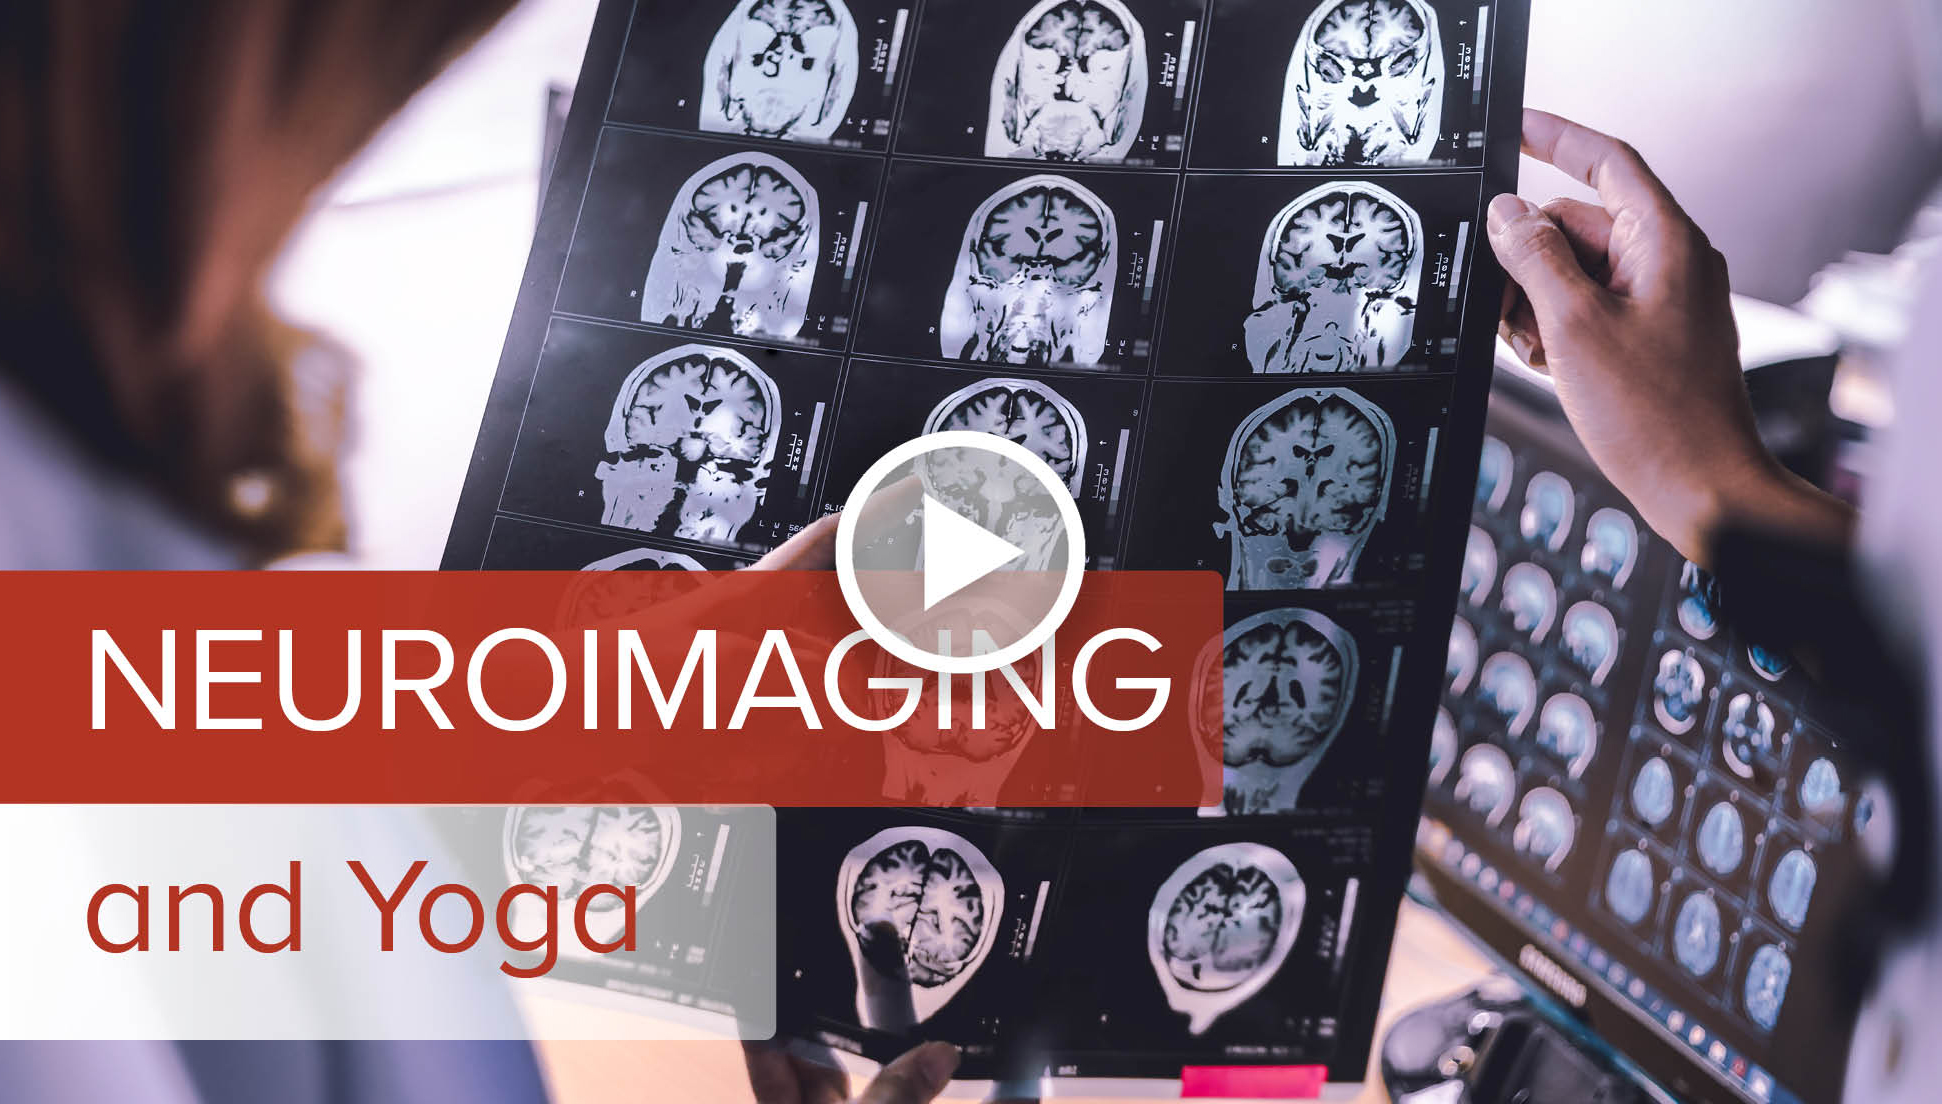 Neuroimaging and Yoga